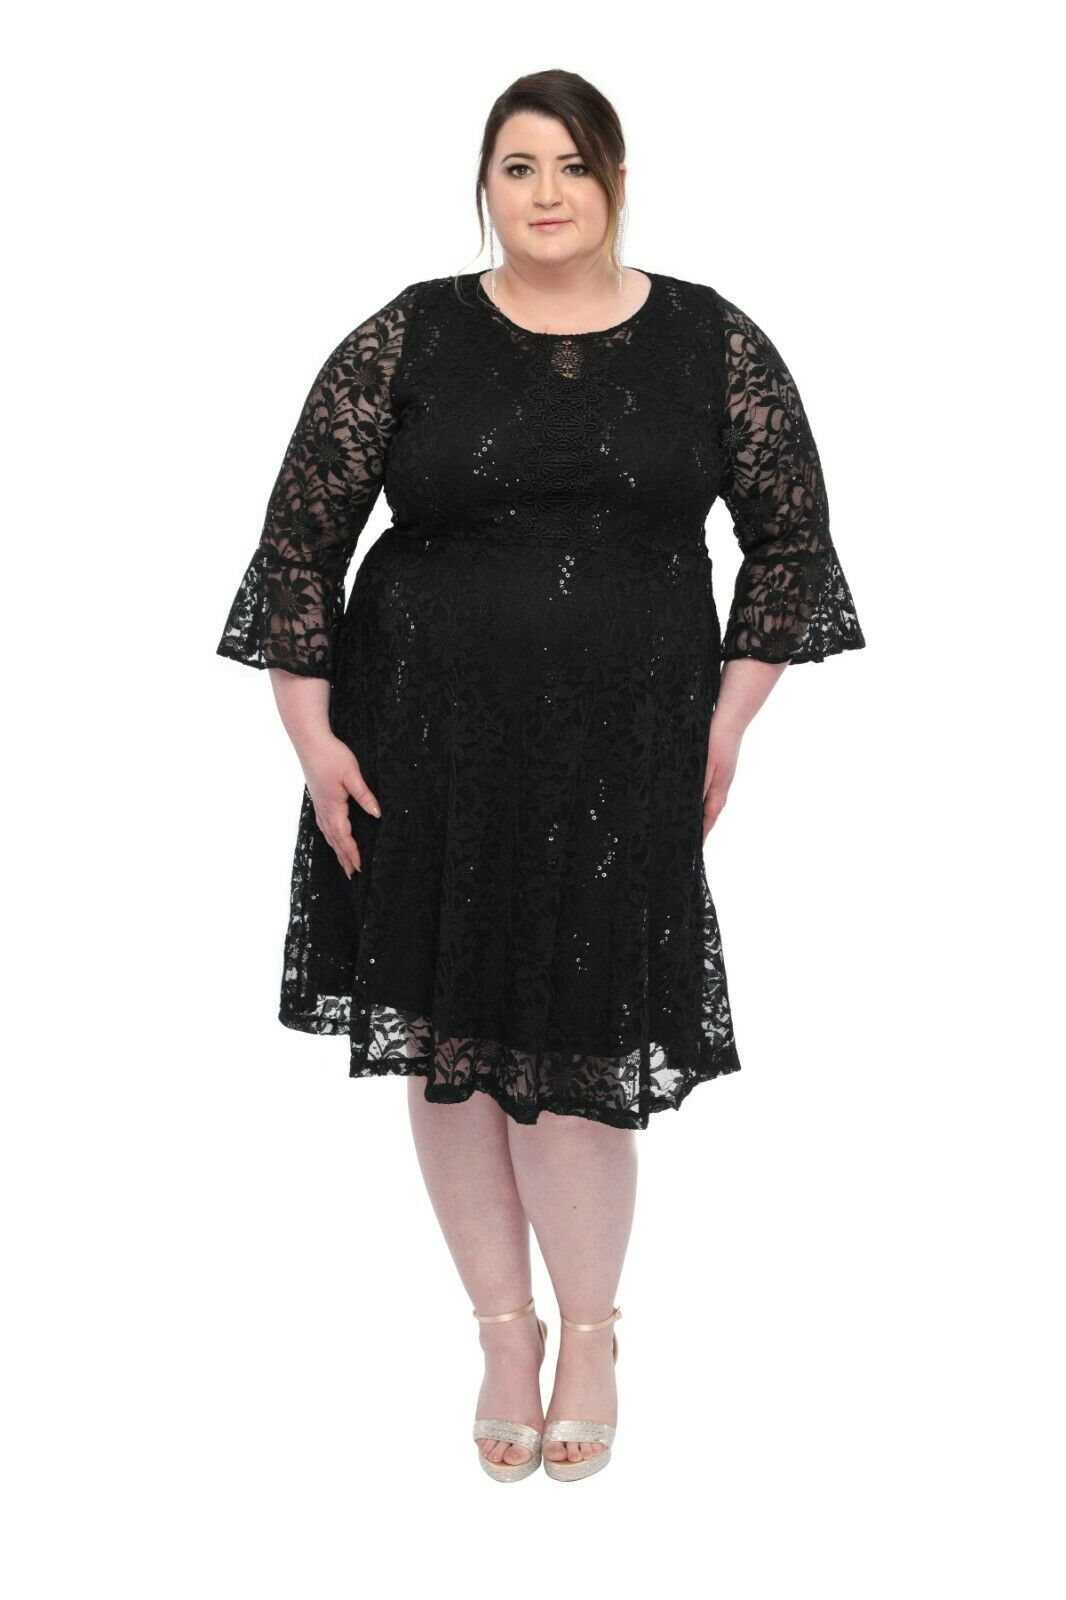 SleekTrends damen Plus Größe Sequin Lace Bell Sleeve Fit and flare Party Dress